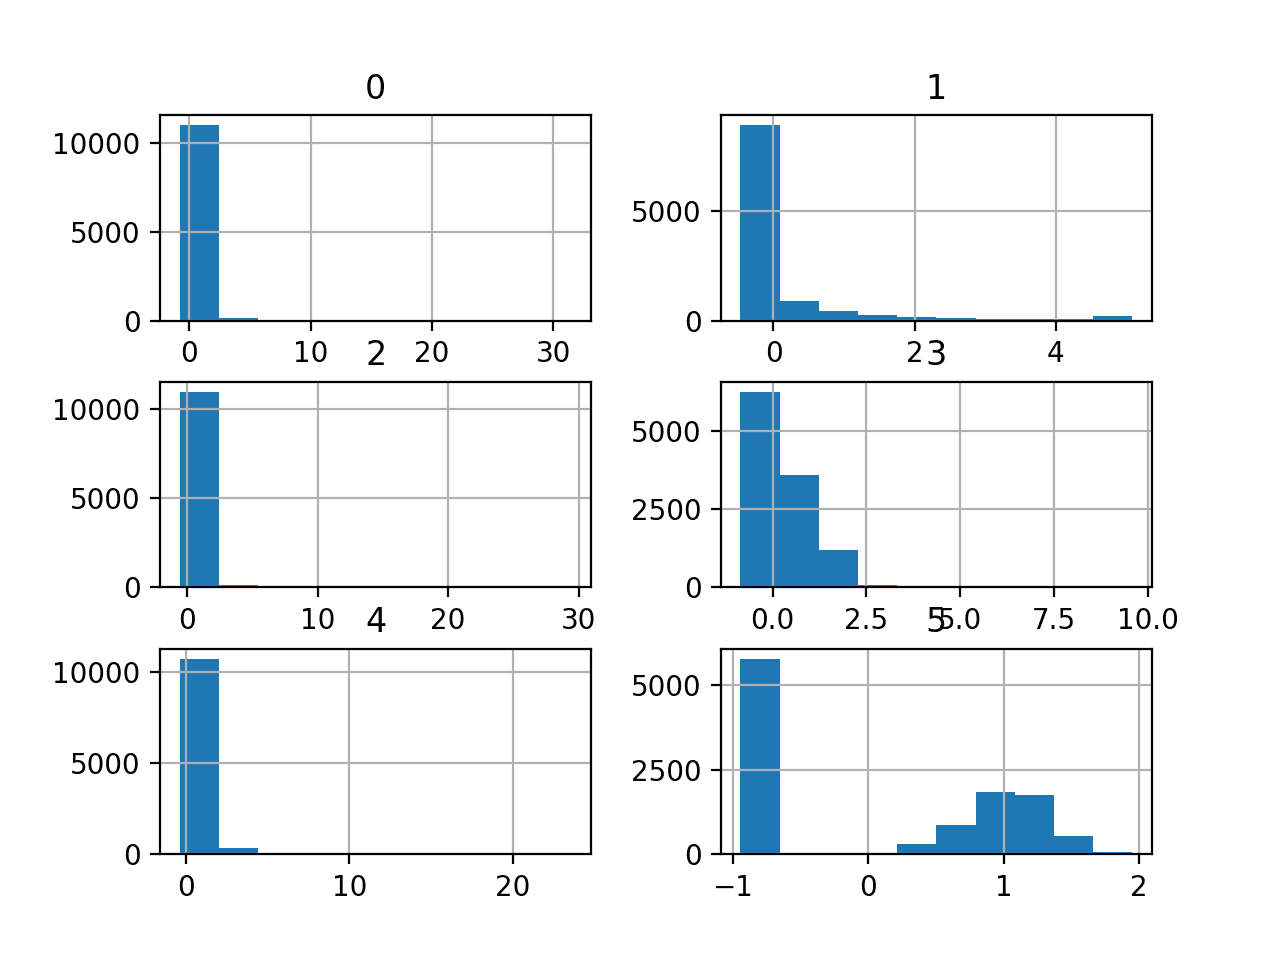 Histograms of the Mammography Classification Dataset